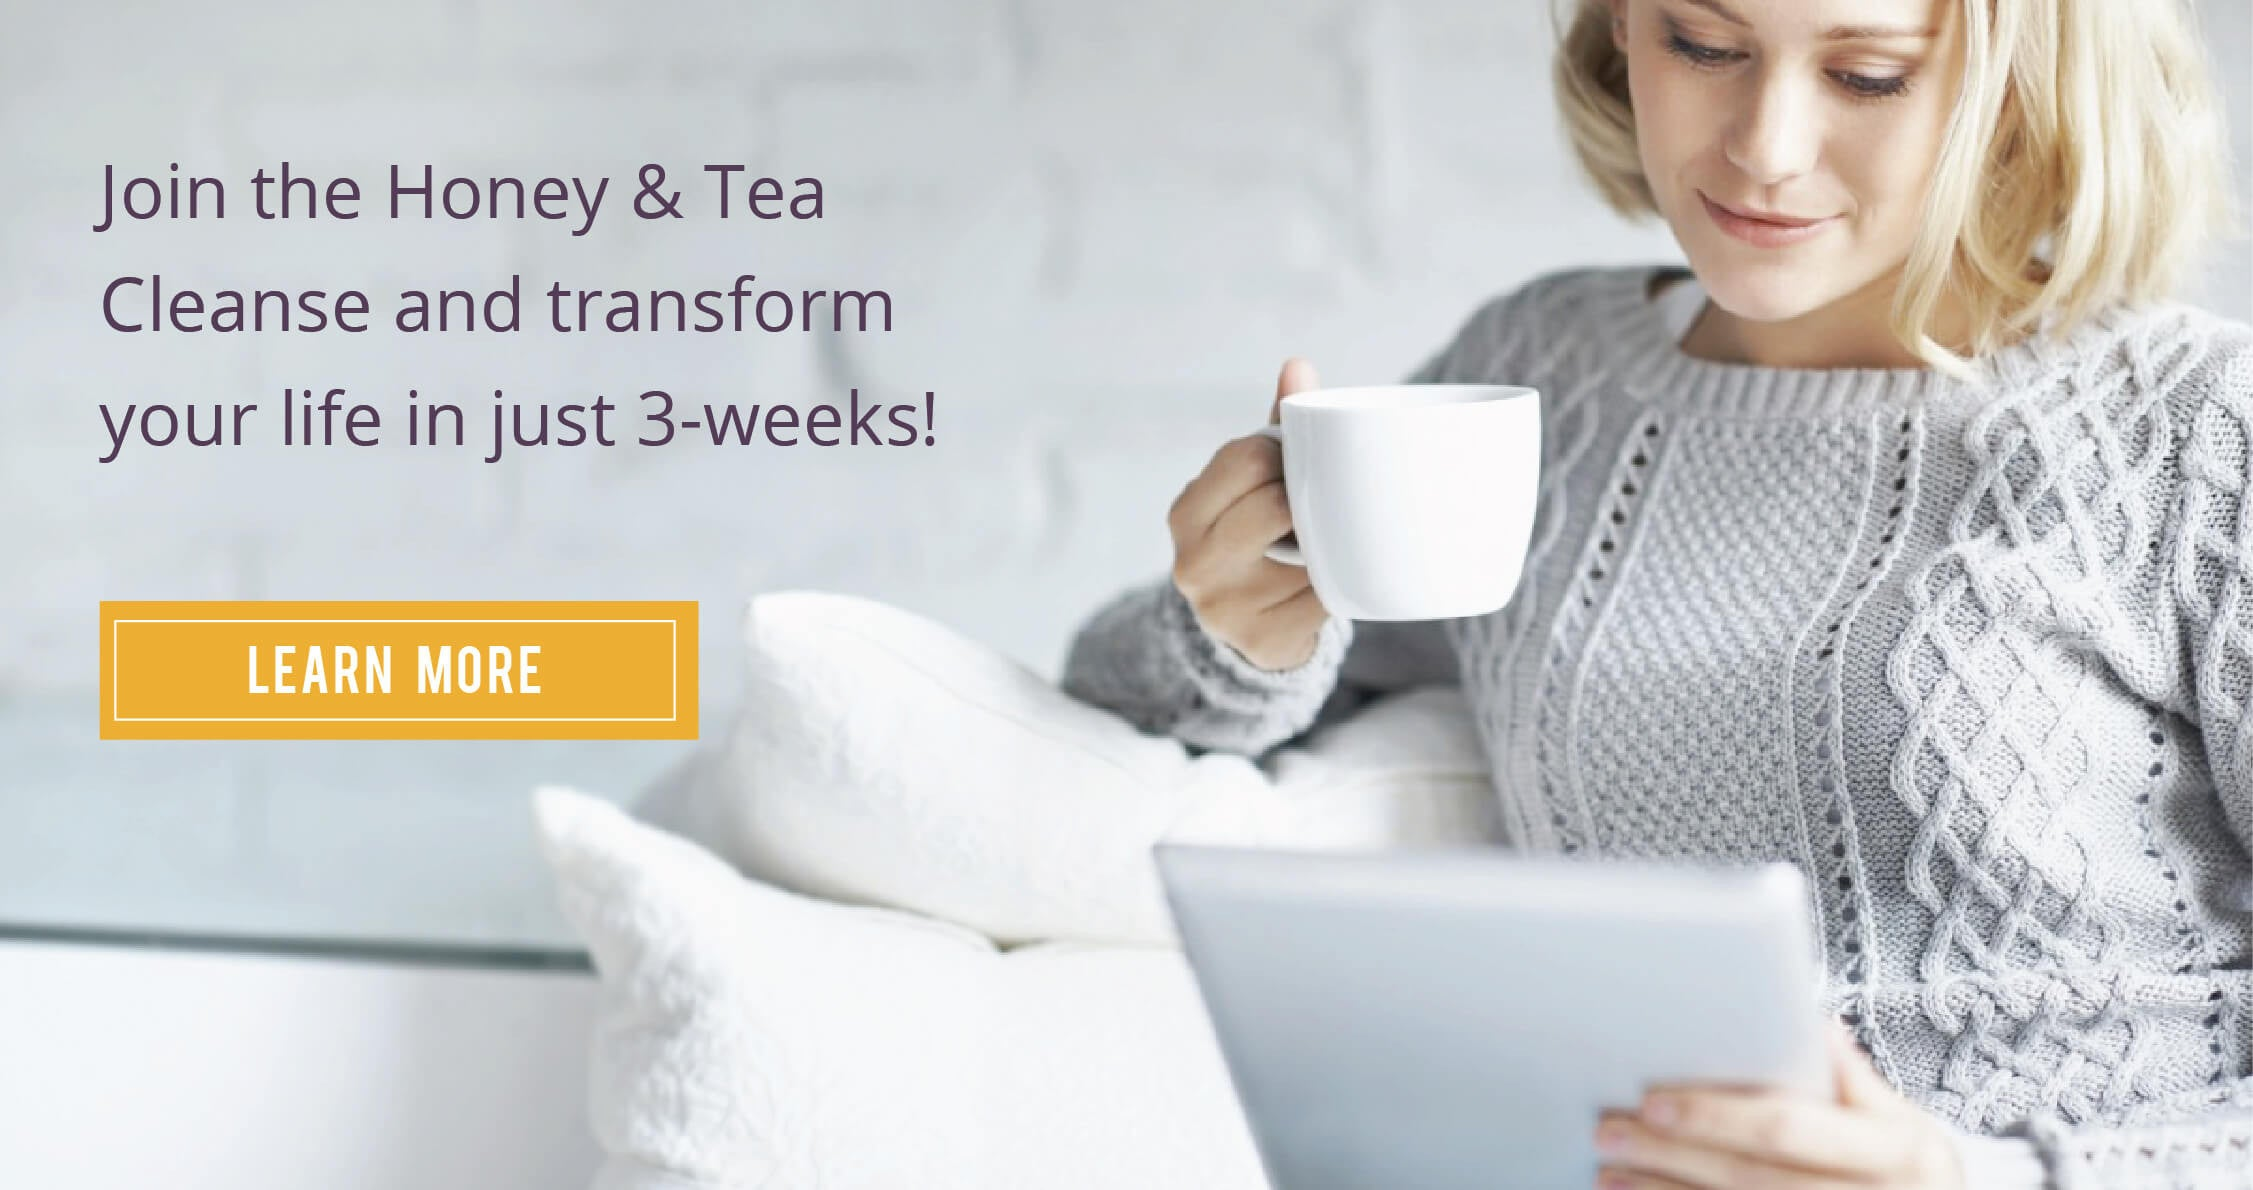 The Honey & Tea Cleanse is a 3-week program, providing direction for a 3-phase lifestyle change.   Part of any successful lifestyle change includes attainable, measurable goals.  Honey & Tea's Cleanse will provide just that through specific direction for manageable adjustments to transform your life in the areas of nutrition, fitness and motivation.